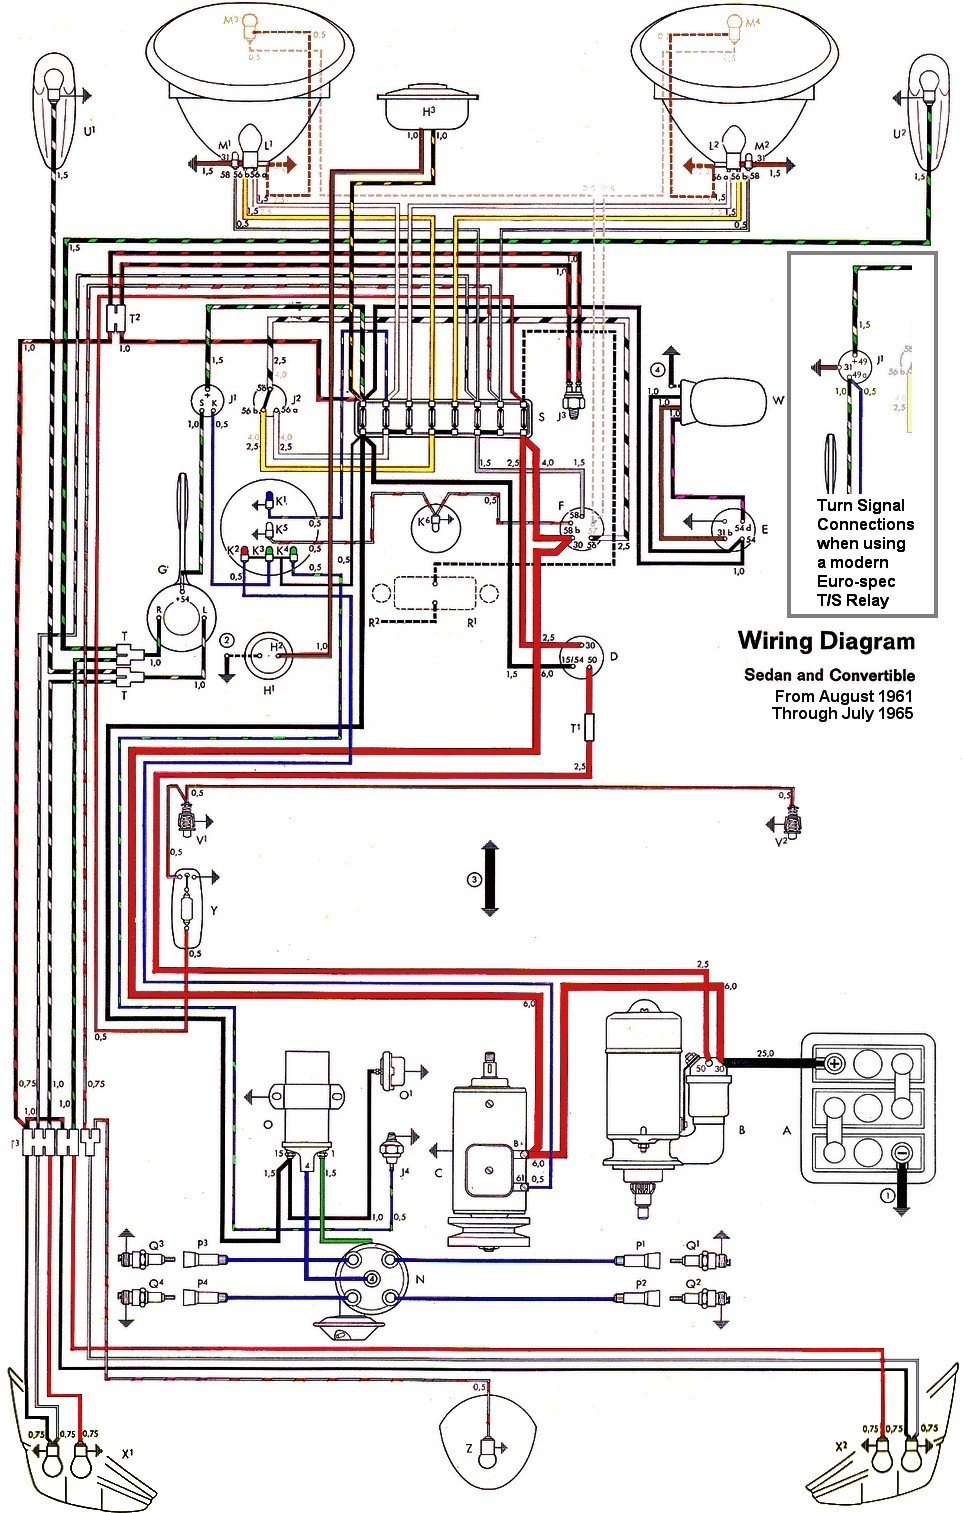 bug_62 65withinset free wiring diagrams \u2022 205 ufc co 1965 vw bus wiring harness at cos-gaming.co